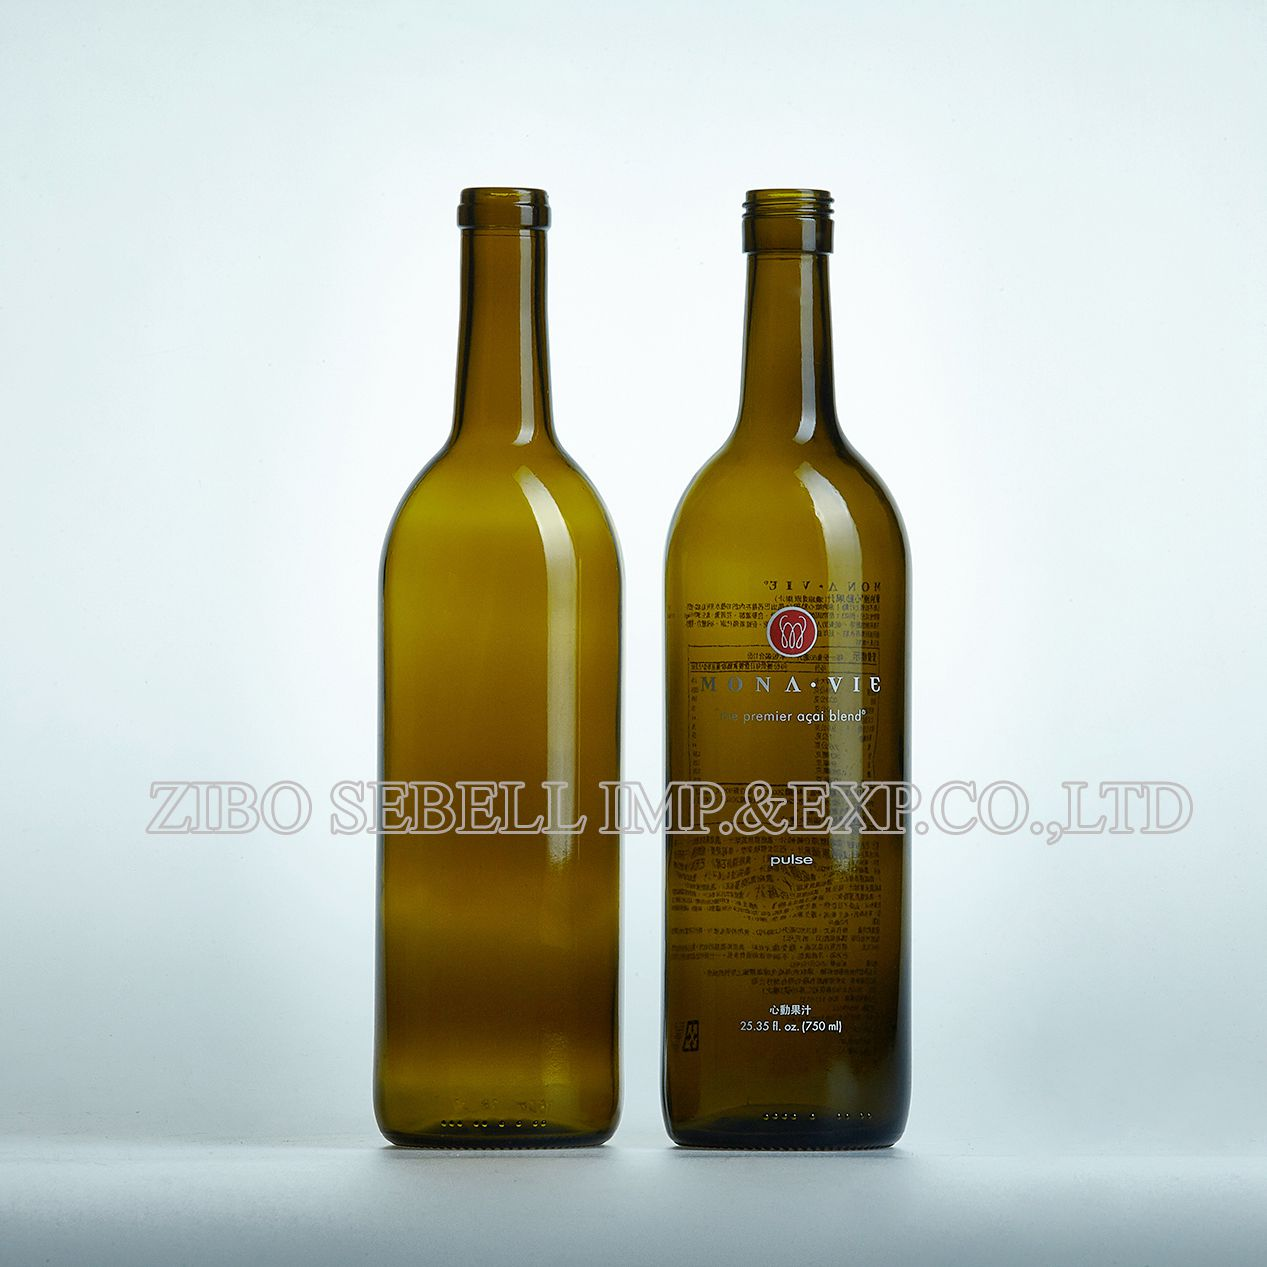 750ml bordeaux wine bottle with cork top/screw cap